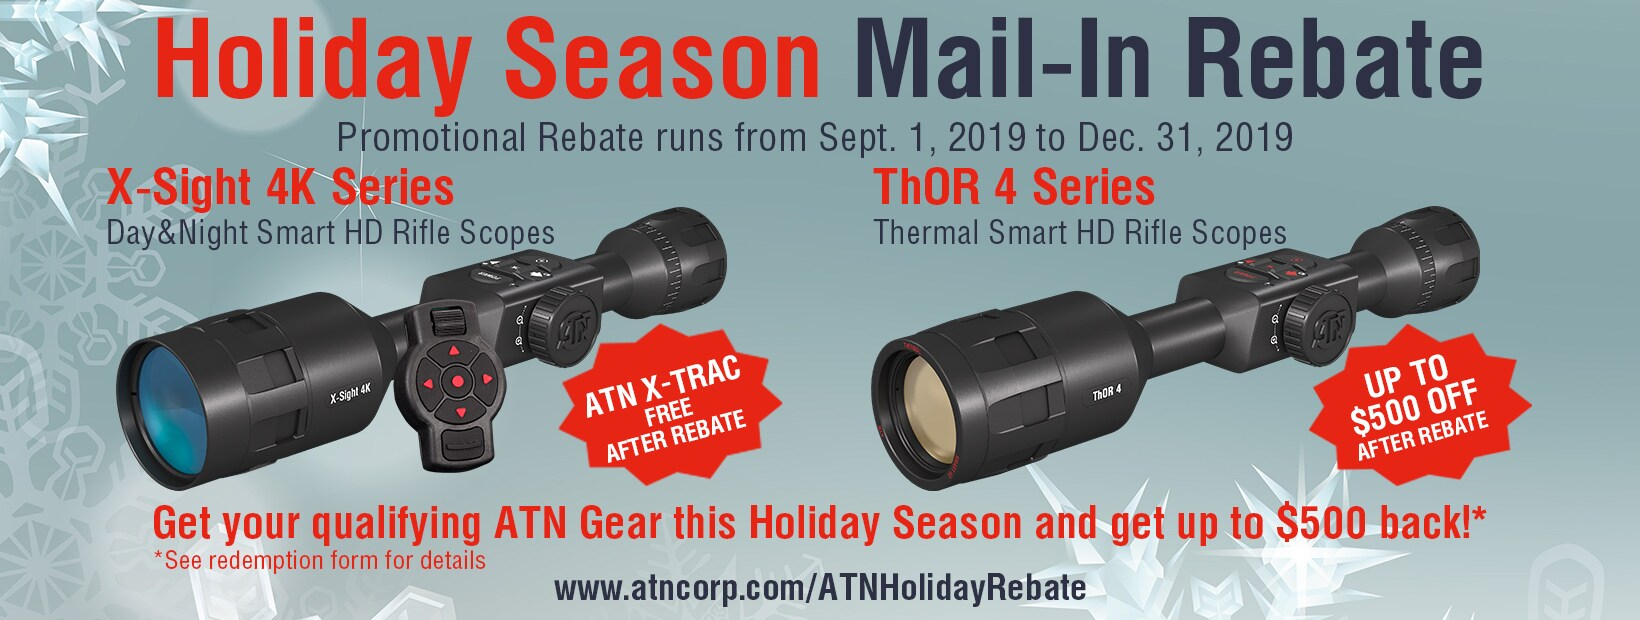 ATN Holiday Mail-In Rebate